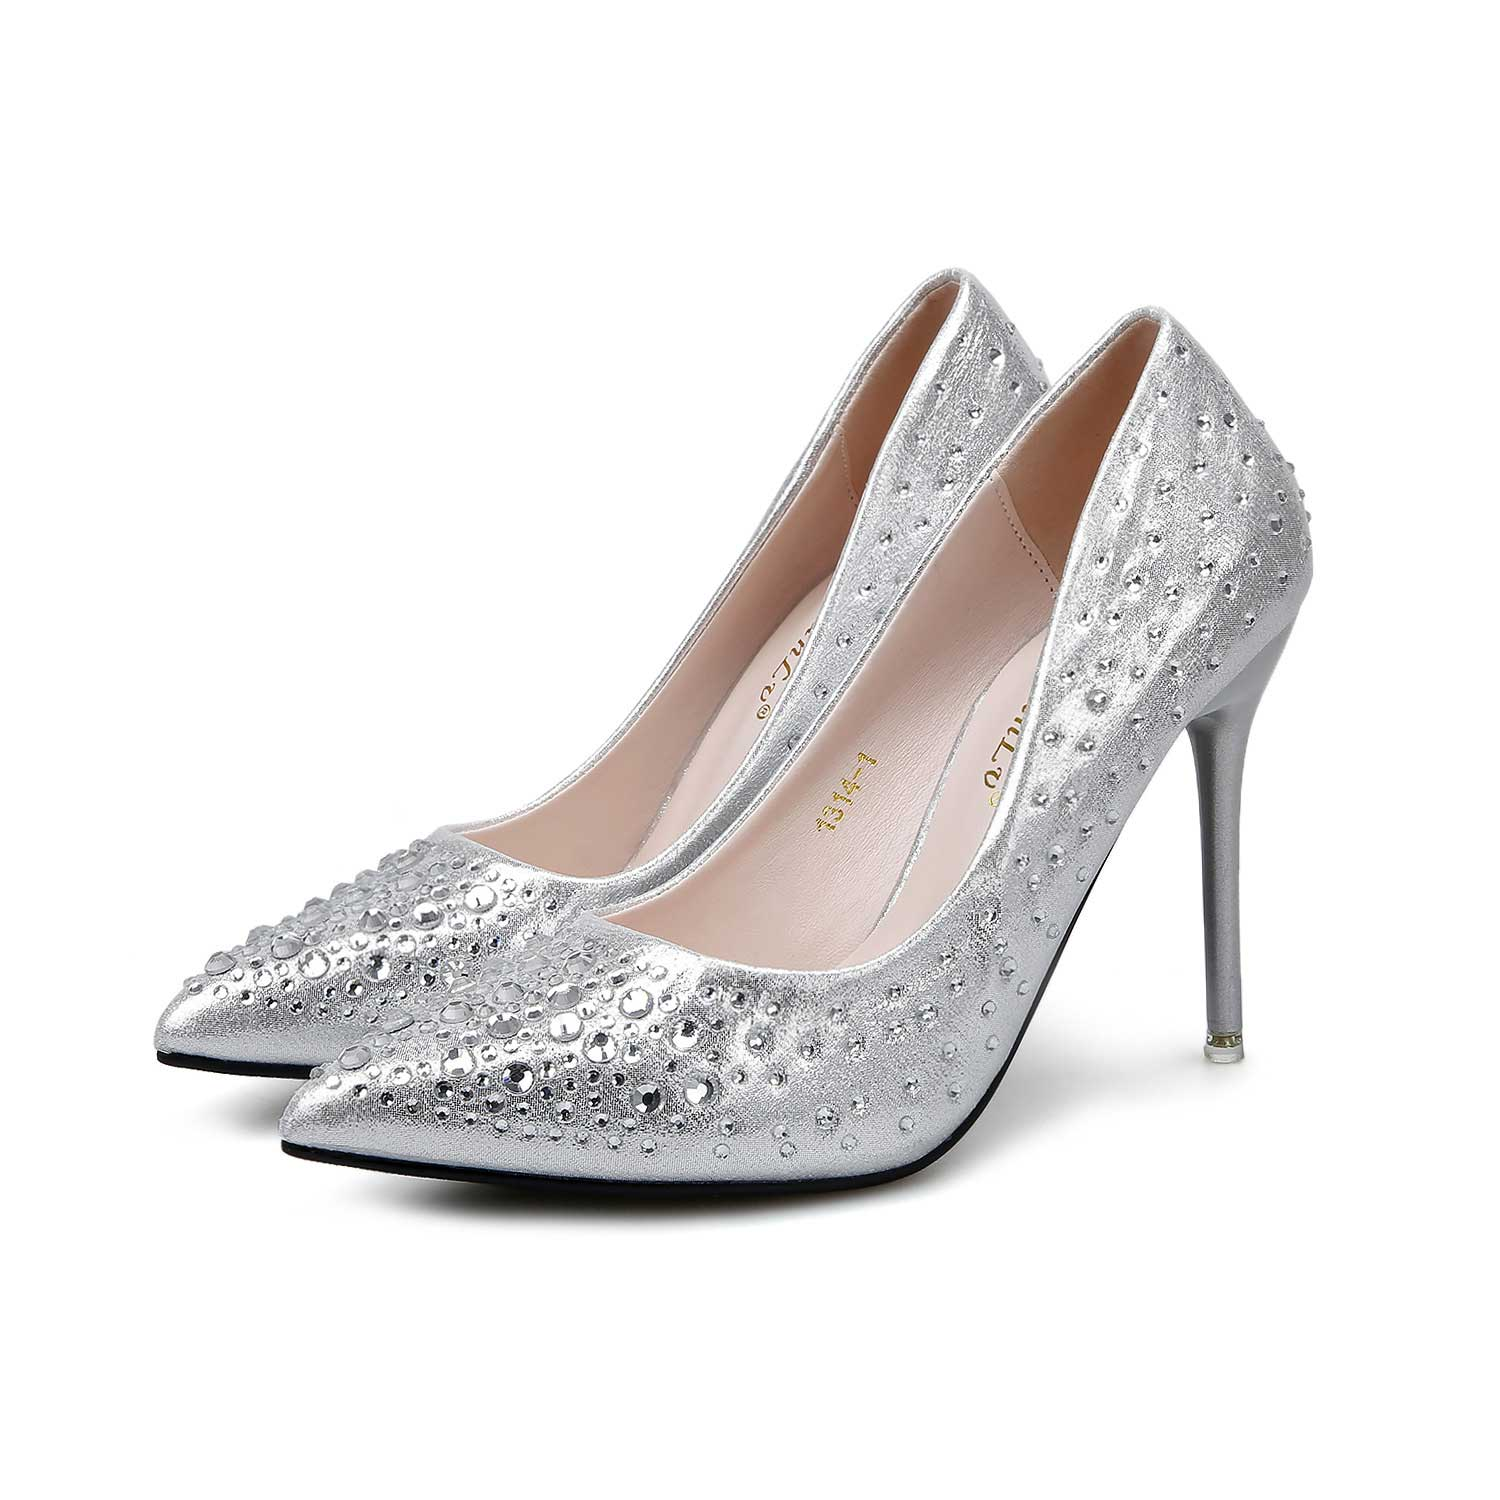 c8d16313bff Silver Rhinestones Pointed Toe Stiletto Heels Wedding Shoes For Bride